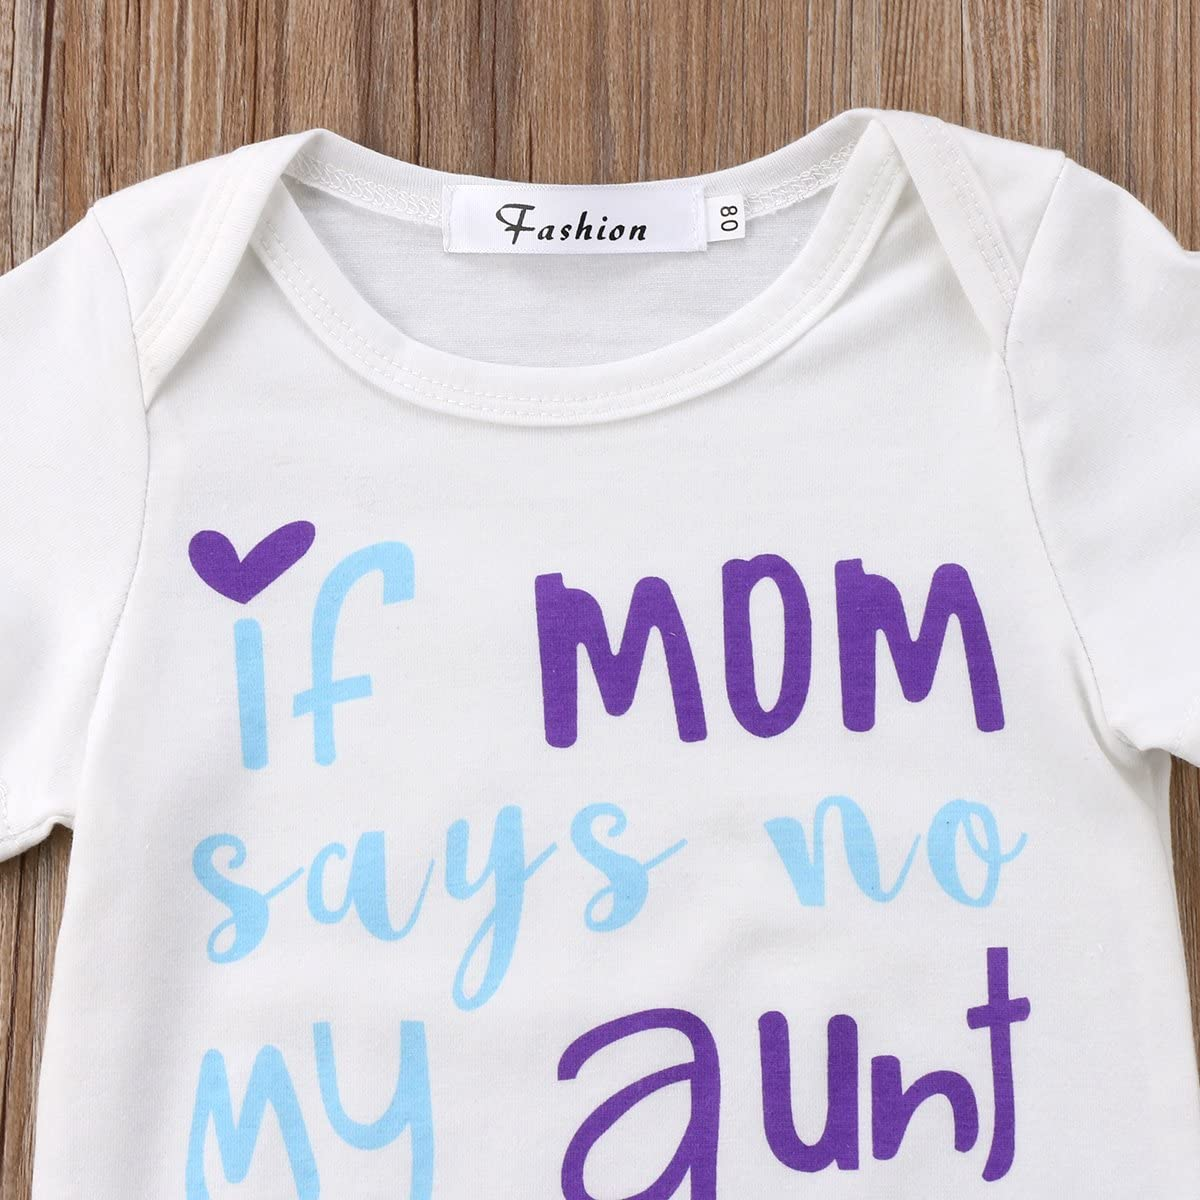 Opperiaya Newborn Baby Girl Clothes Letter Printed T-Shirt Tops Floral Shorts Pants Outfit Set